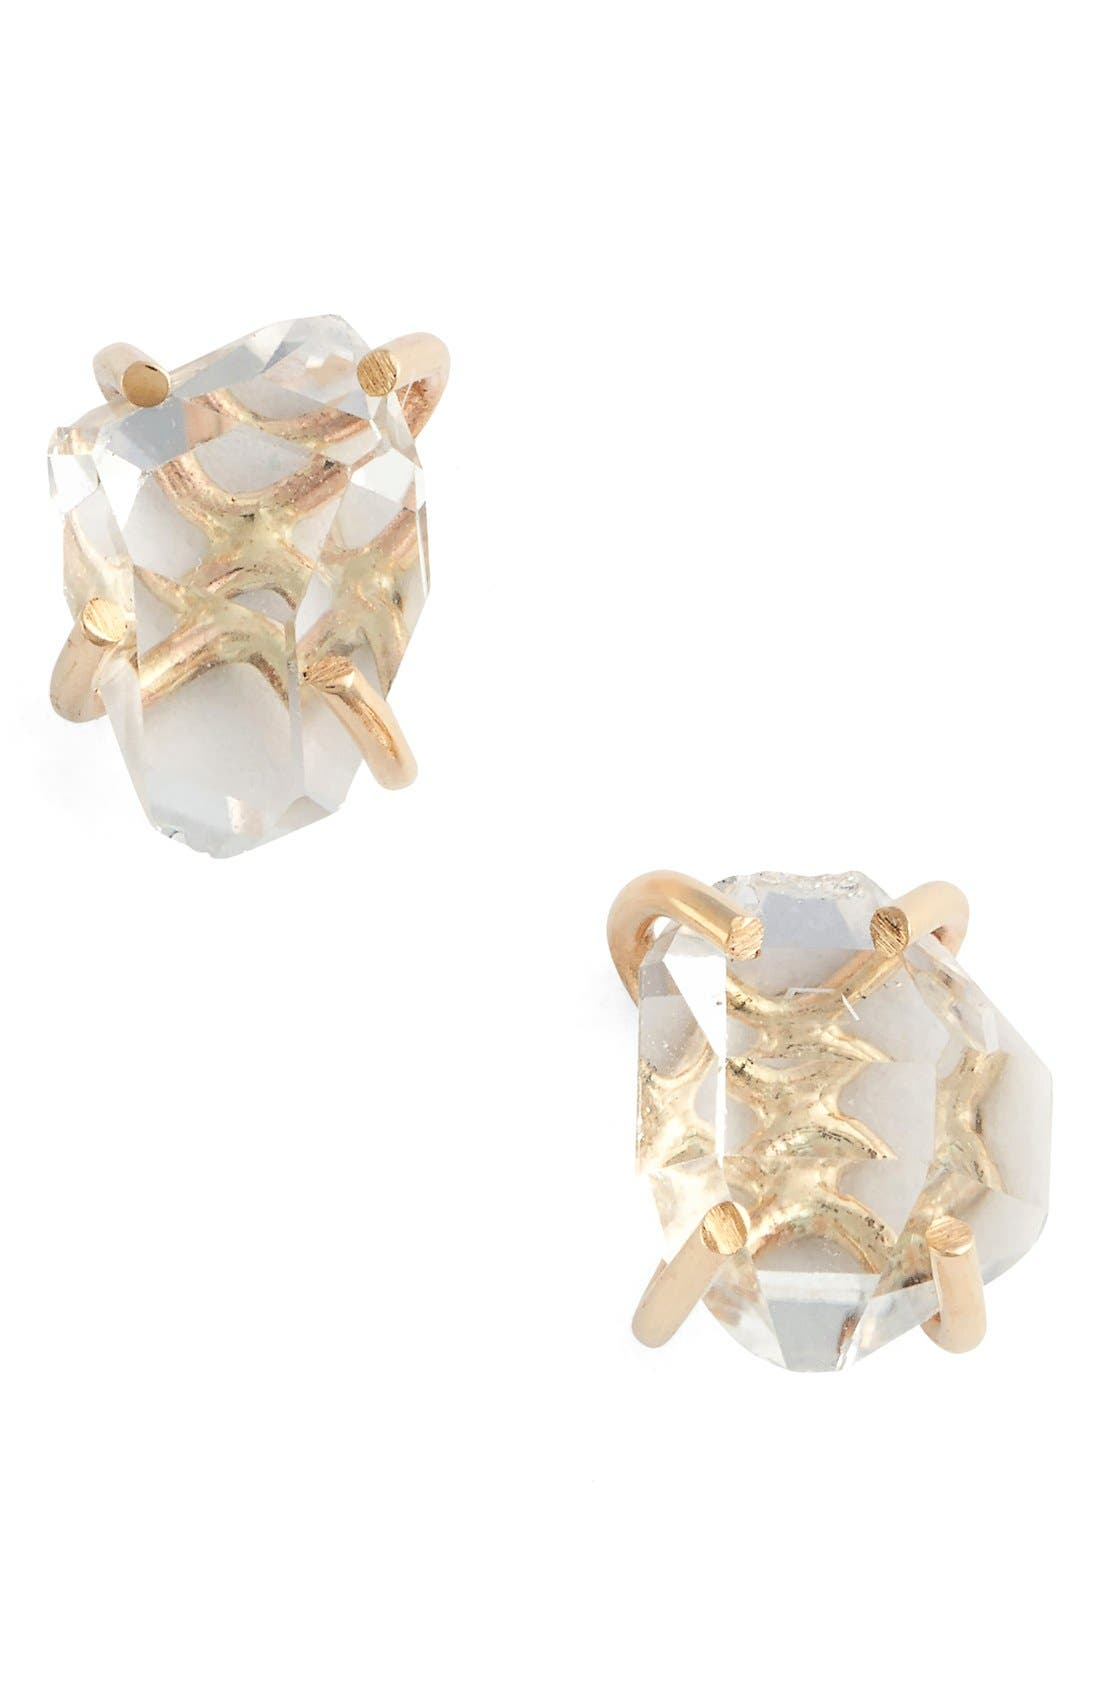 Main Image - Melissa Joy Manning Herkimer Stud Earrings